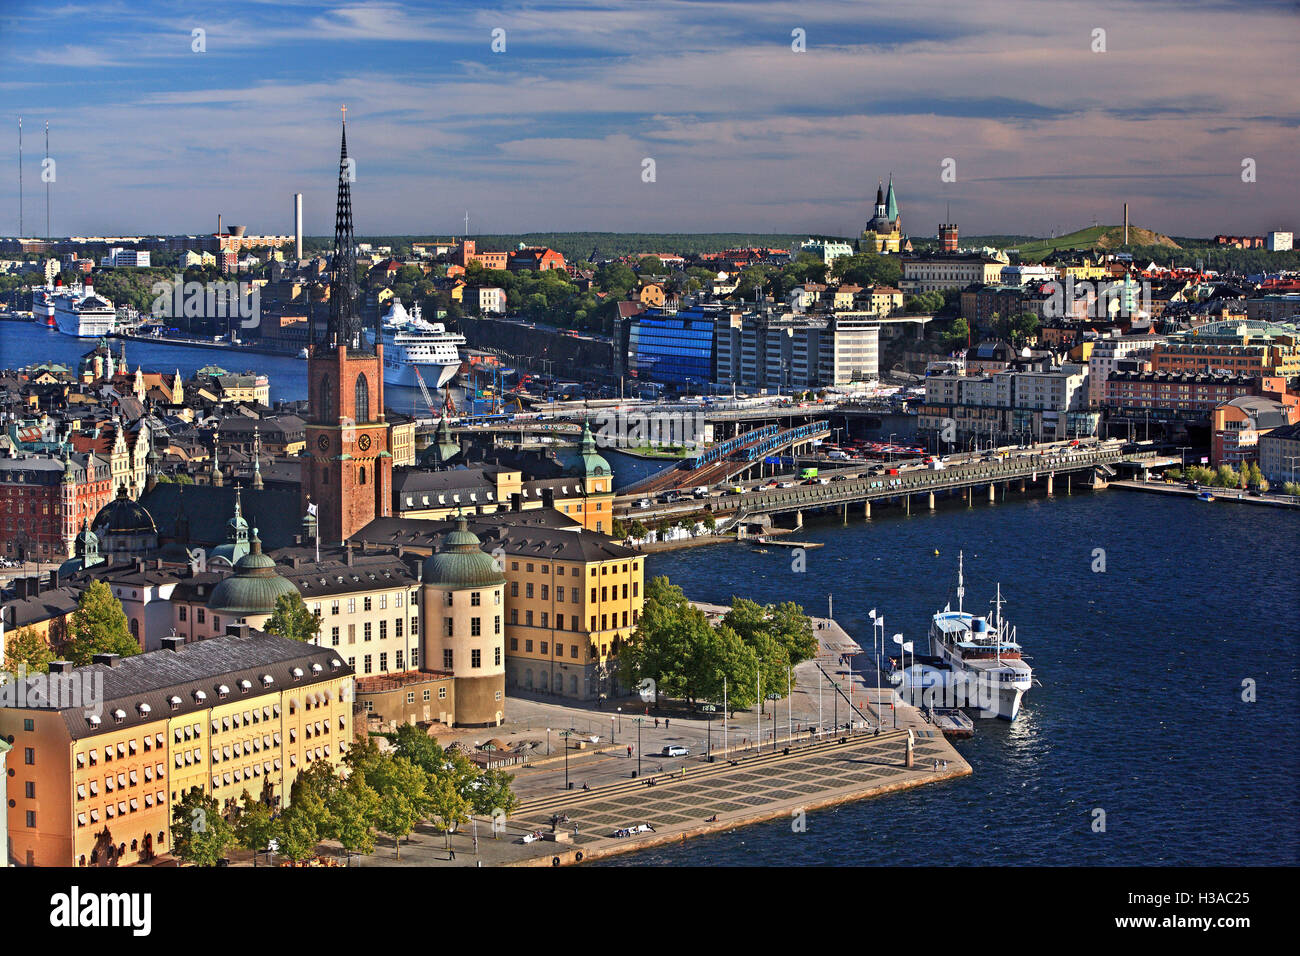 The bridges that connect Gamla Stan and Riddarholmen with Sodermalm, Stockholm, Sweden. View from the City hall - Stock Image